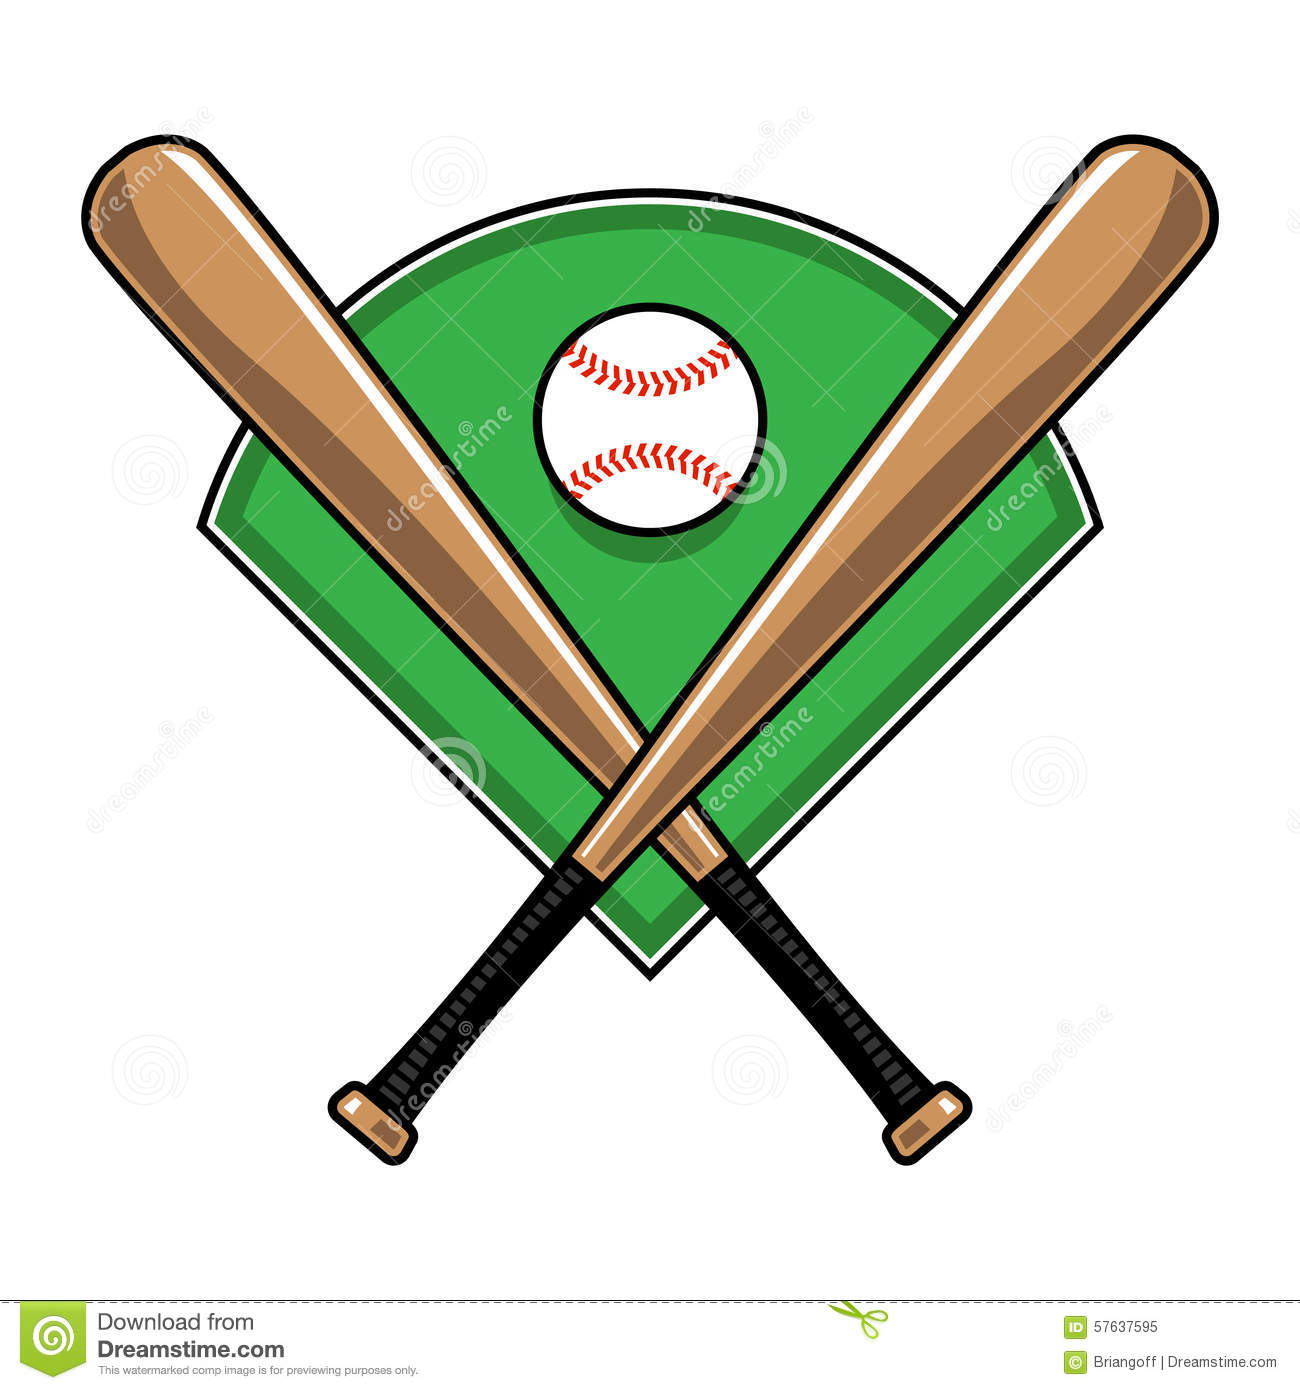 Baseball Bats Stock Illustrations – 760 Baseball Bats Stock ...